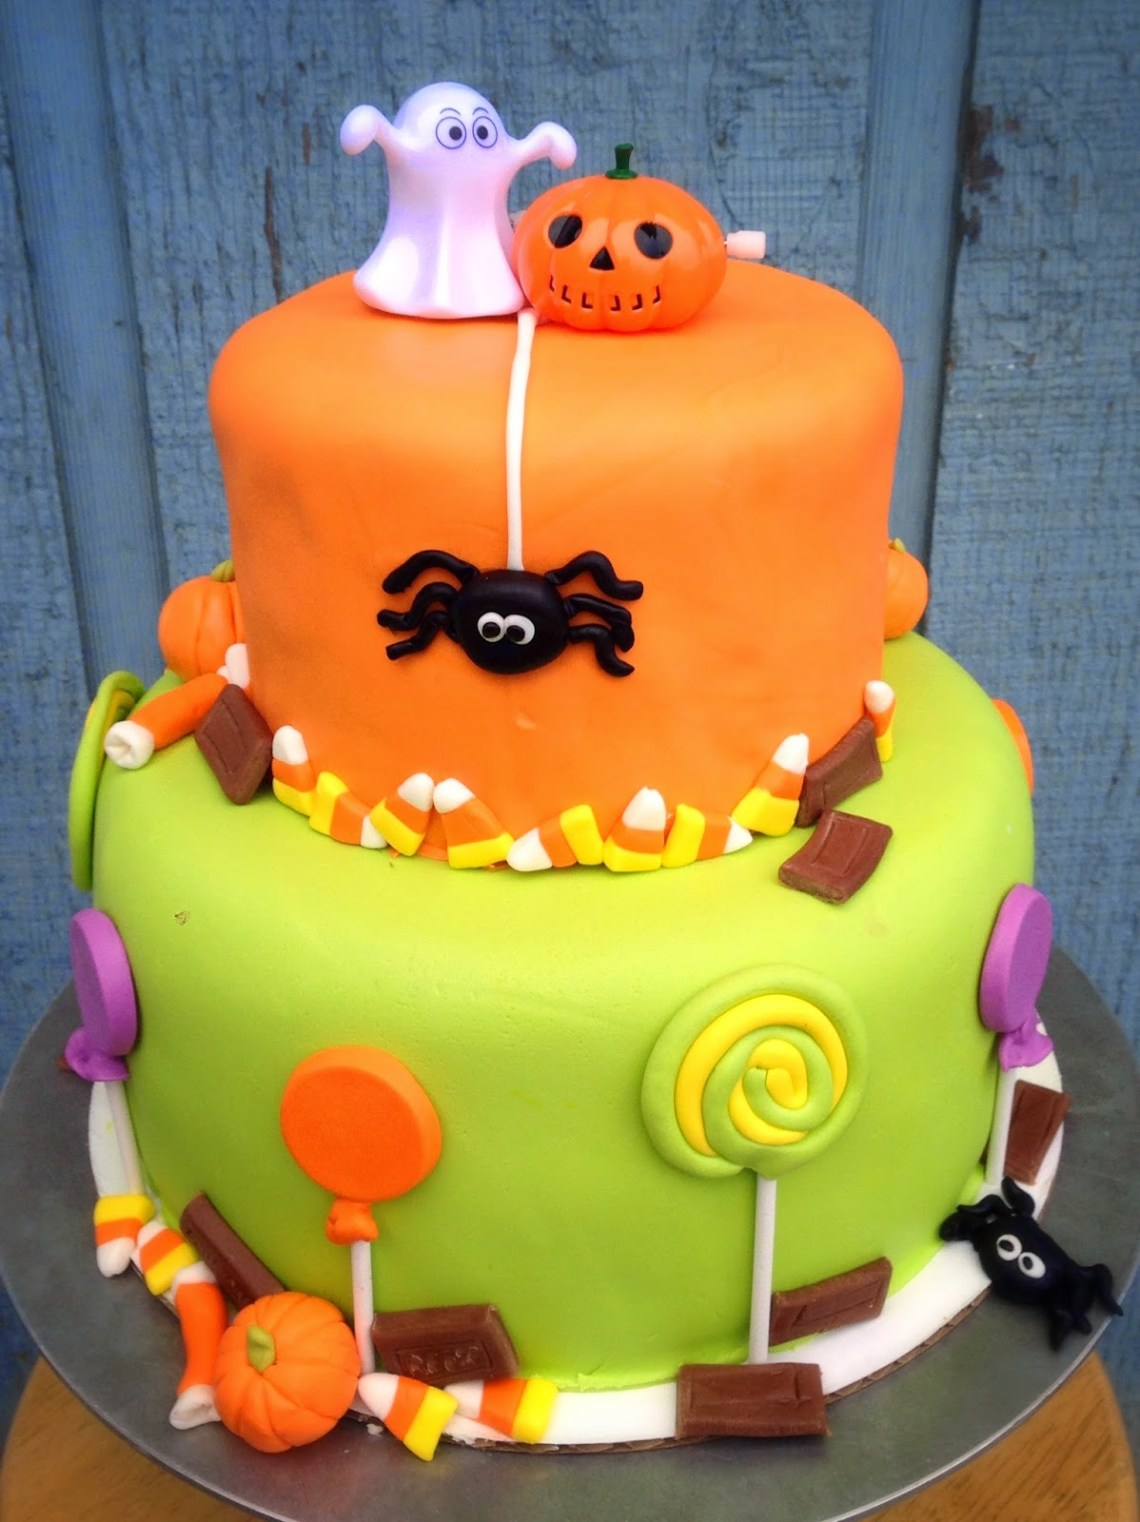 Sensational Halloween Birthday Cake Toddler The Cake Boutique Personalised Birthday Cards Petedlily Jamesorg